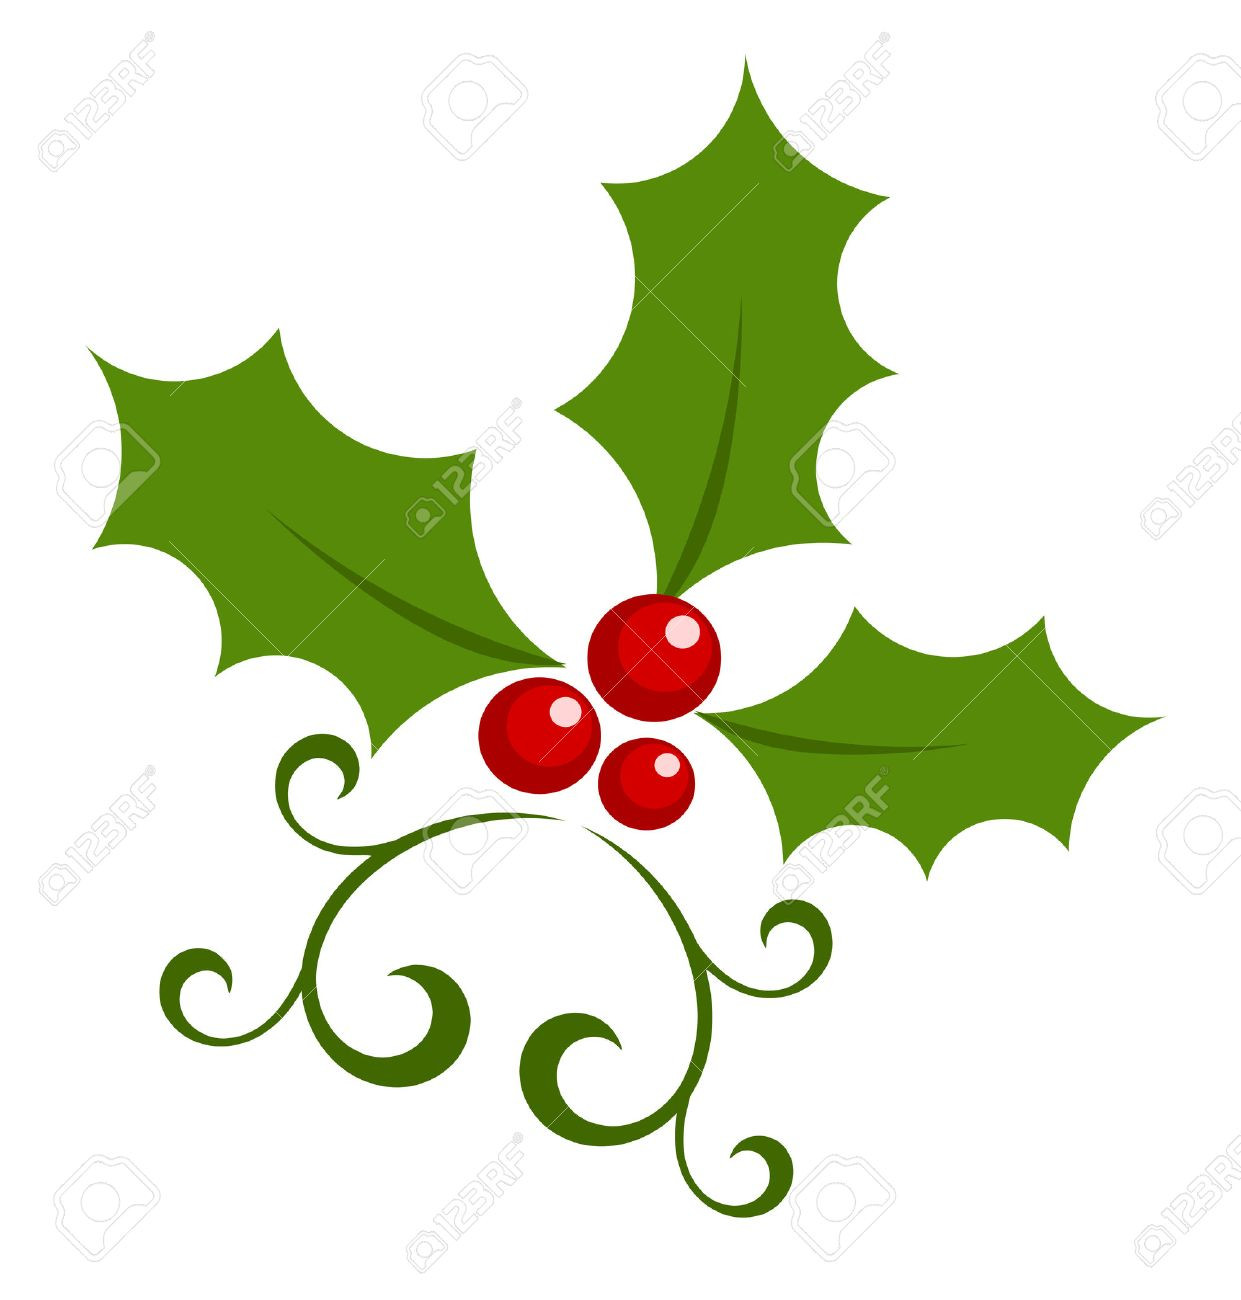 1241x1300 Clip Art Holly And Berries Olddesignshop Hollyberries1904 Unusual